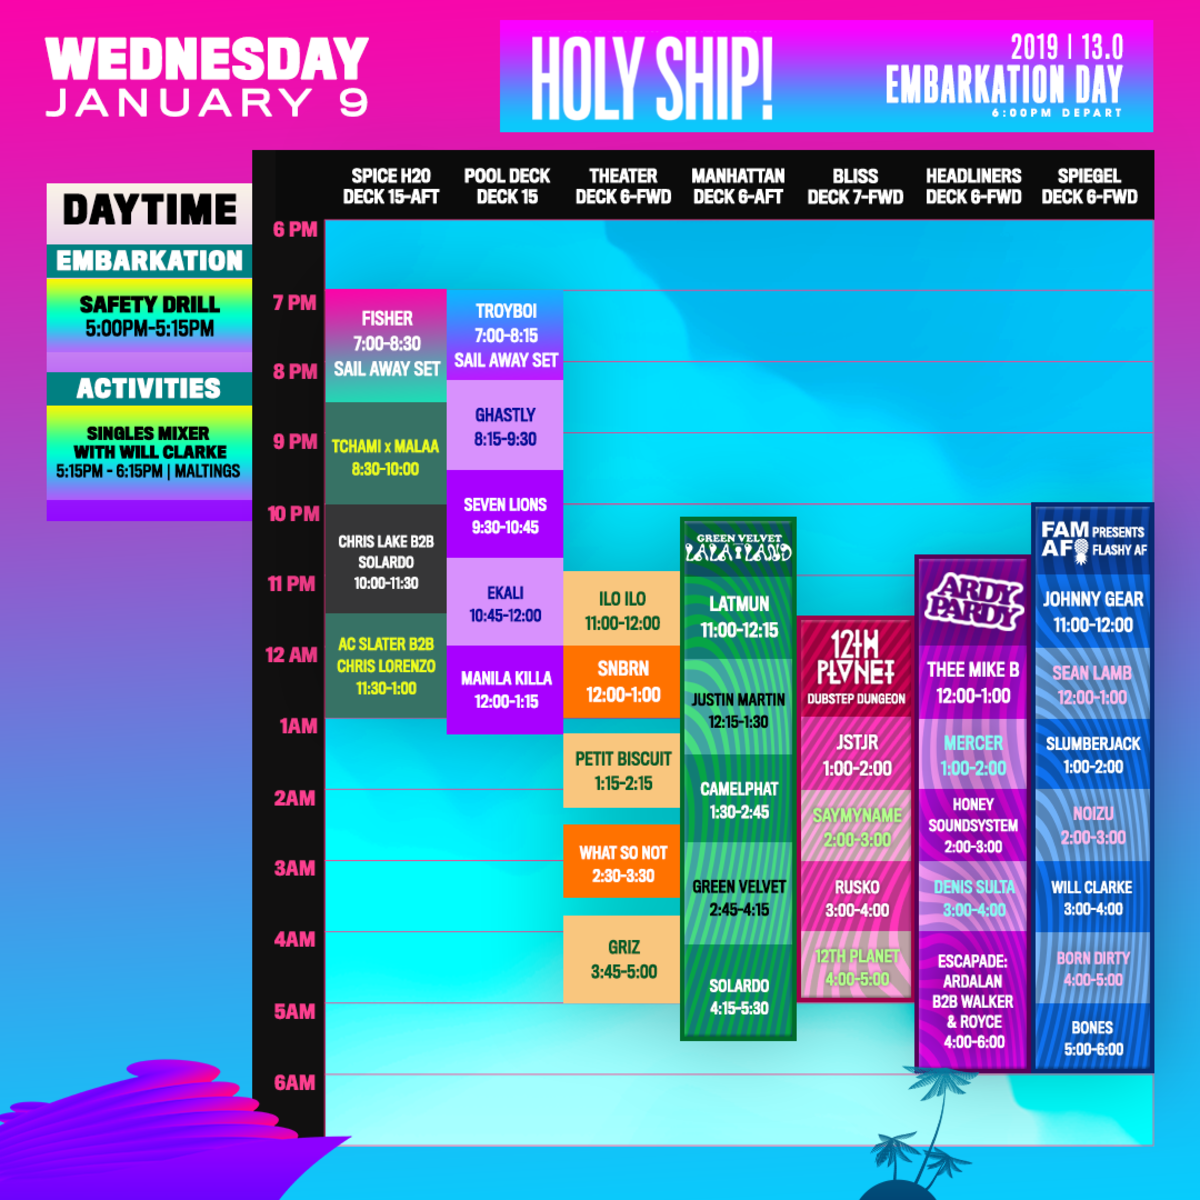 holy_ship_2019_lu_set_times_social_assets_day_1_13.0_1080x1080_r03